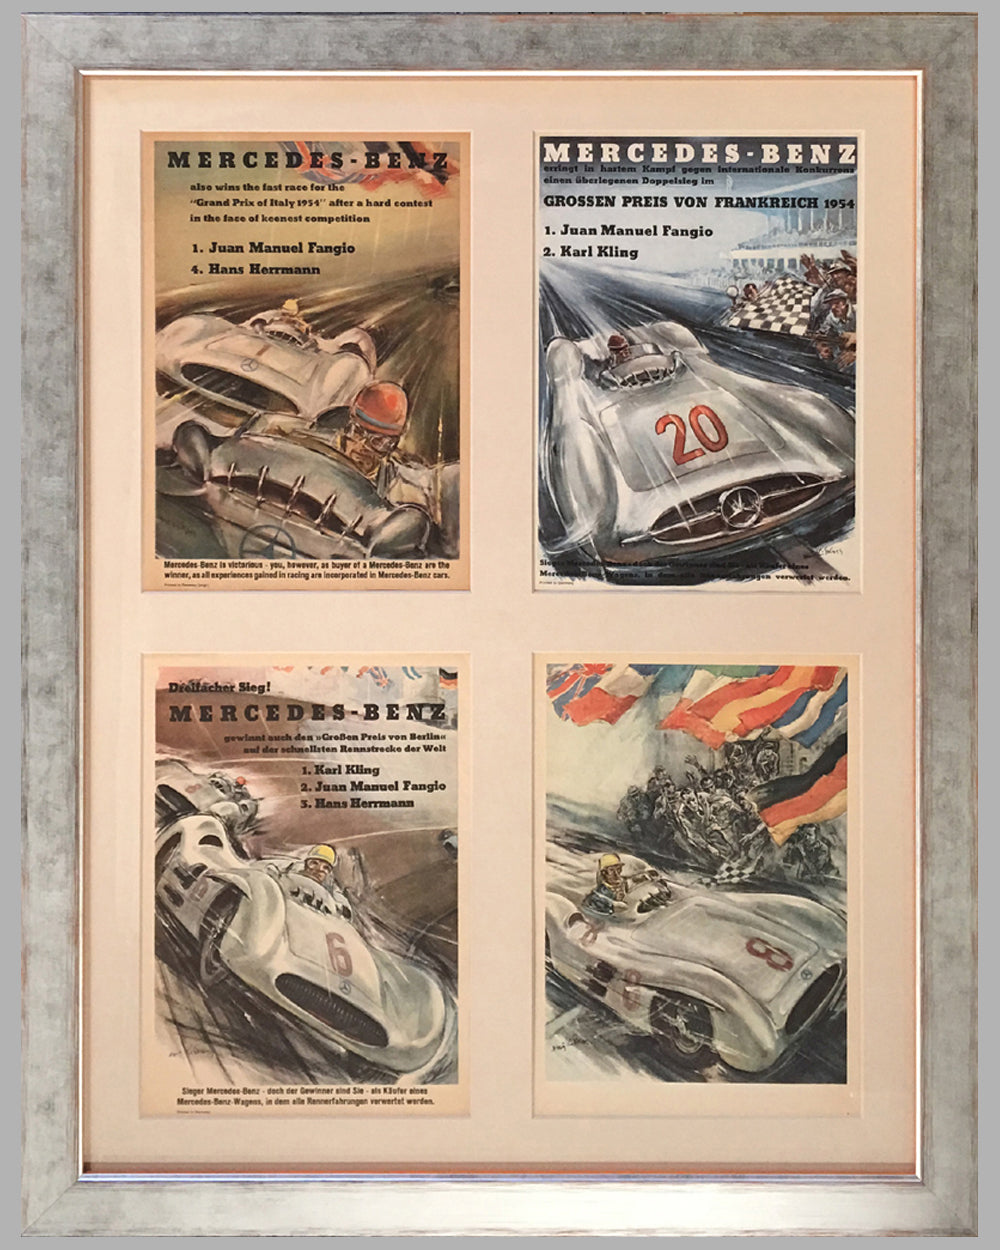 1954-1955 Mercedes-Benz victory posters by Hans Liska, lot of 4